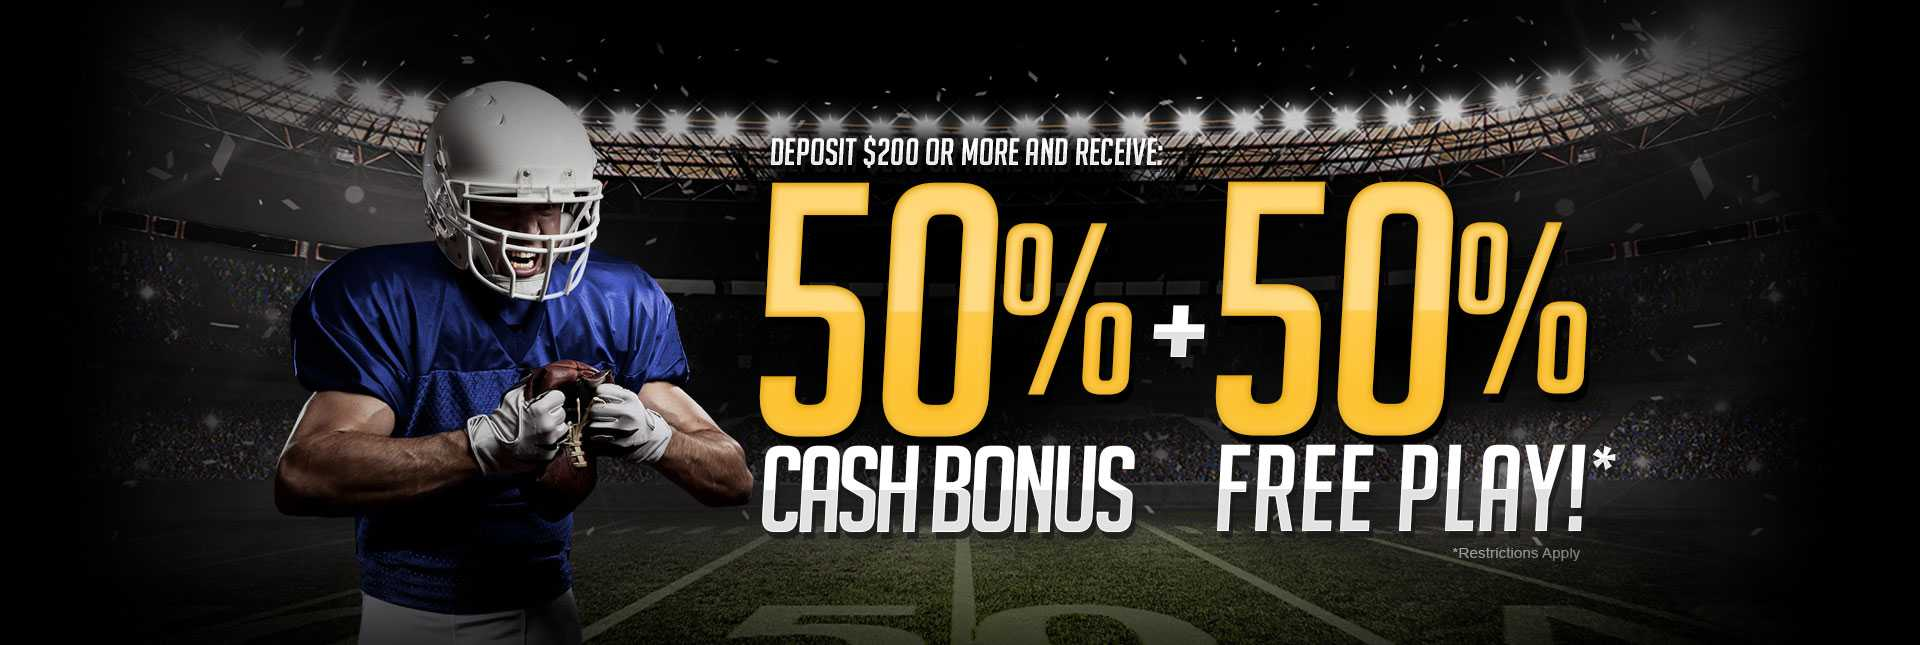 50% Cash Bonus + 50% Free Play!*